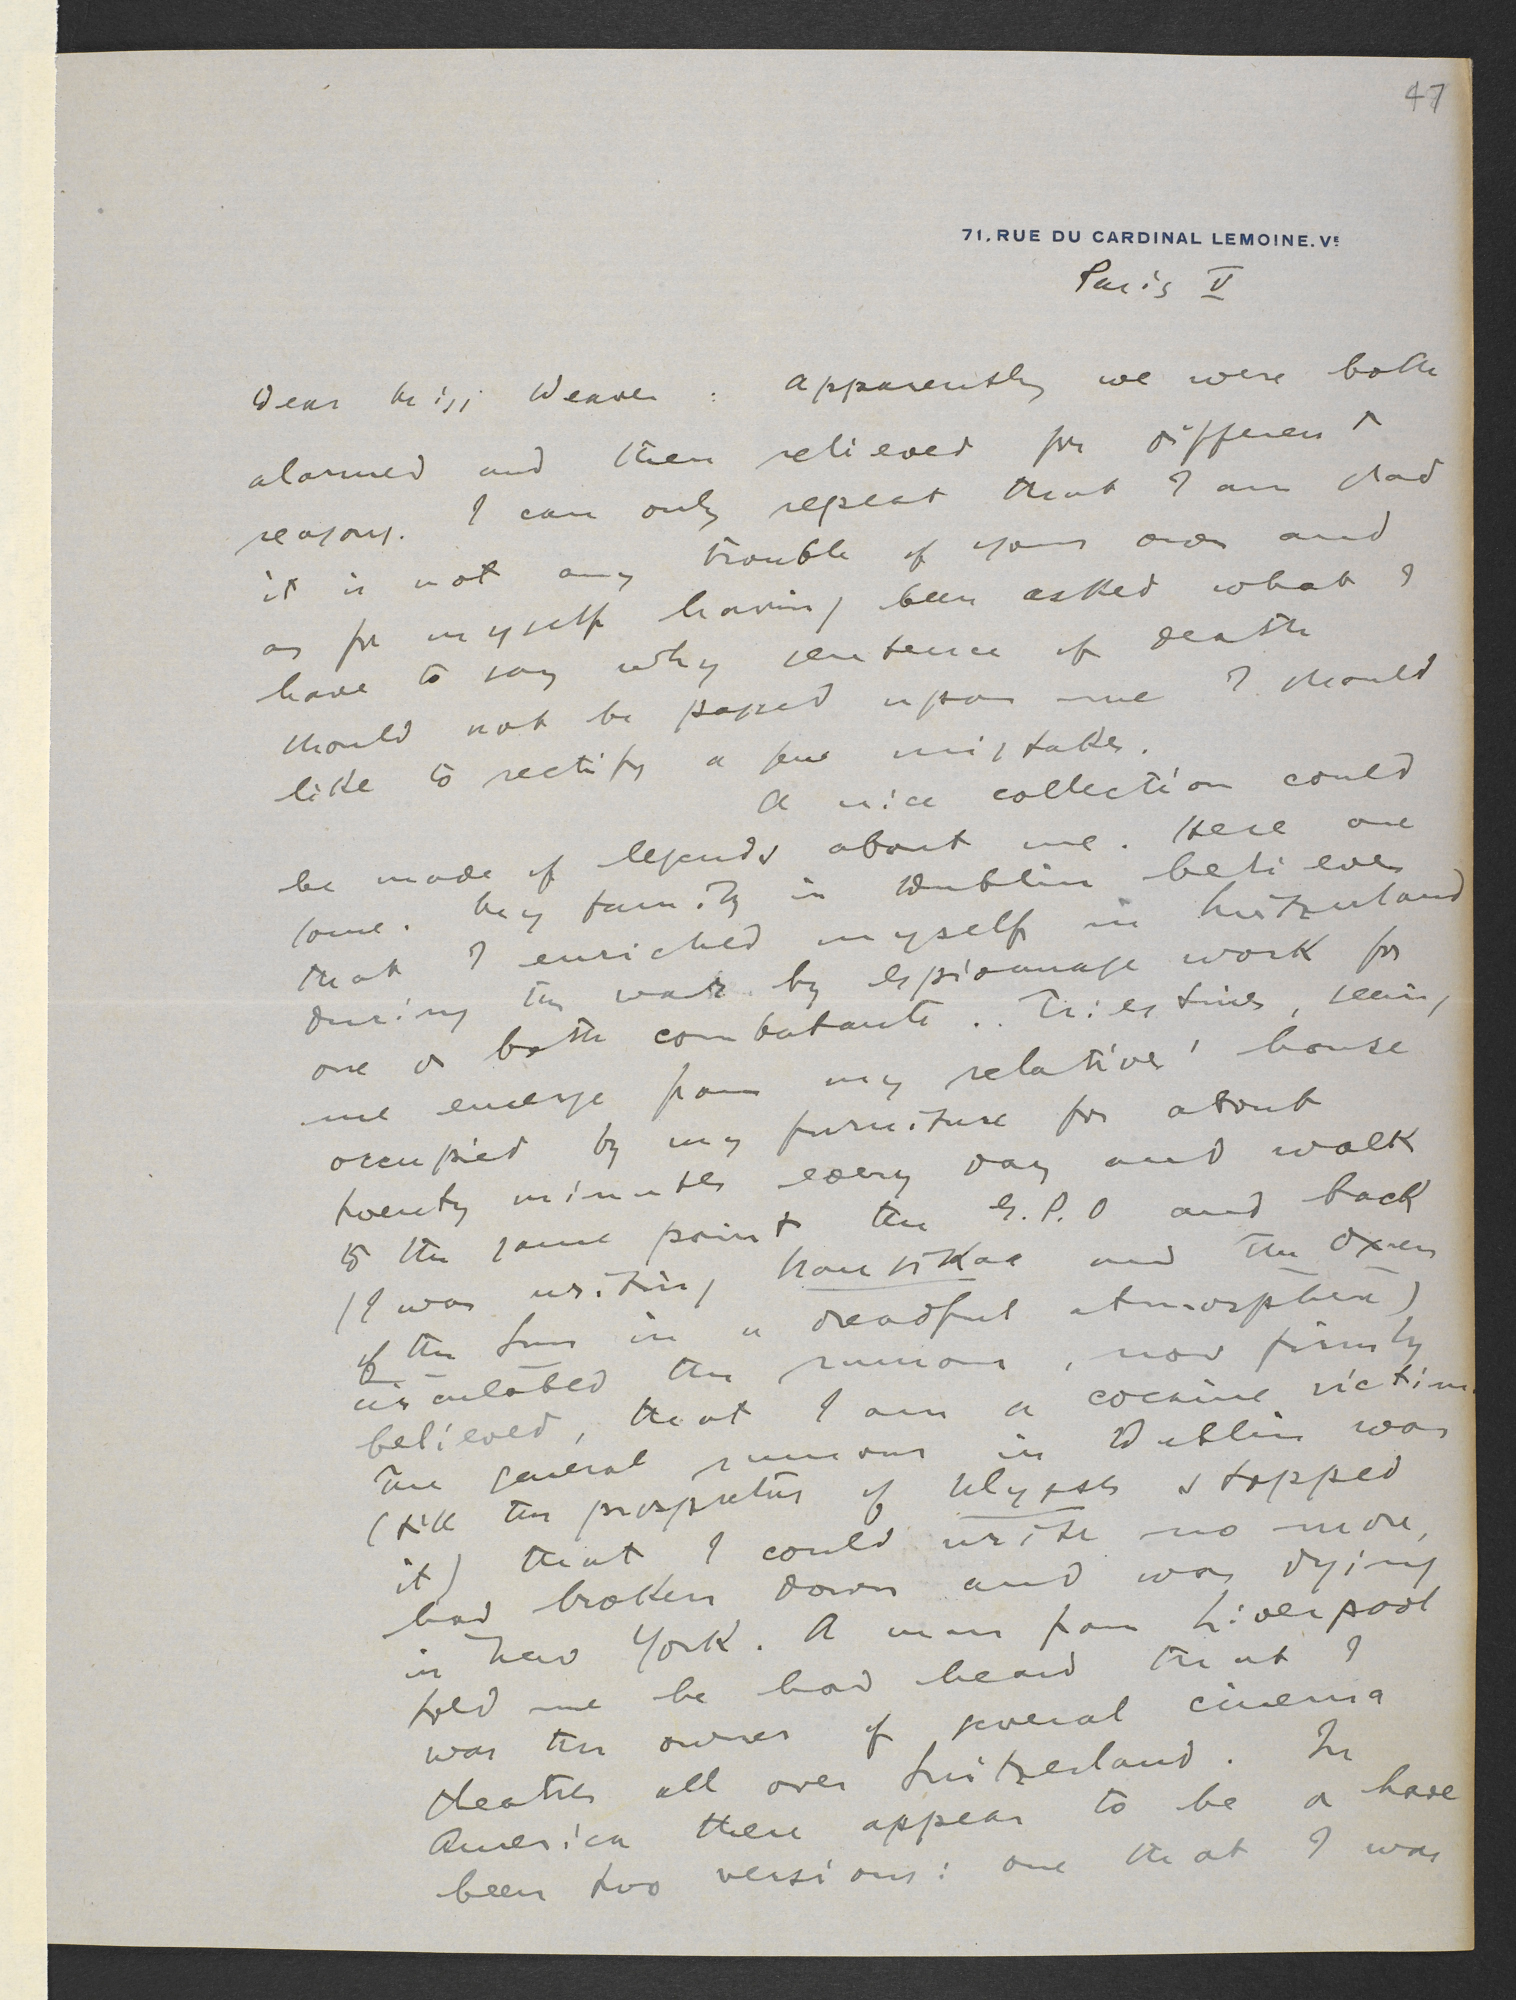 Material relating to James Joyce and Ulysses